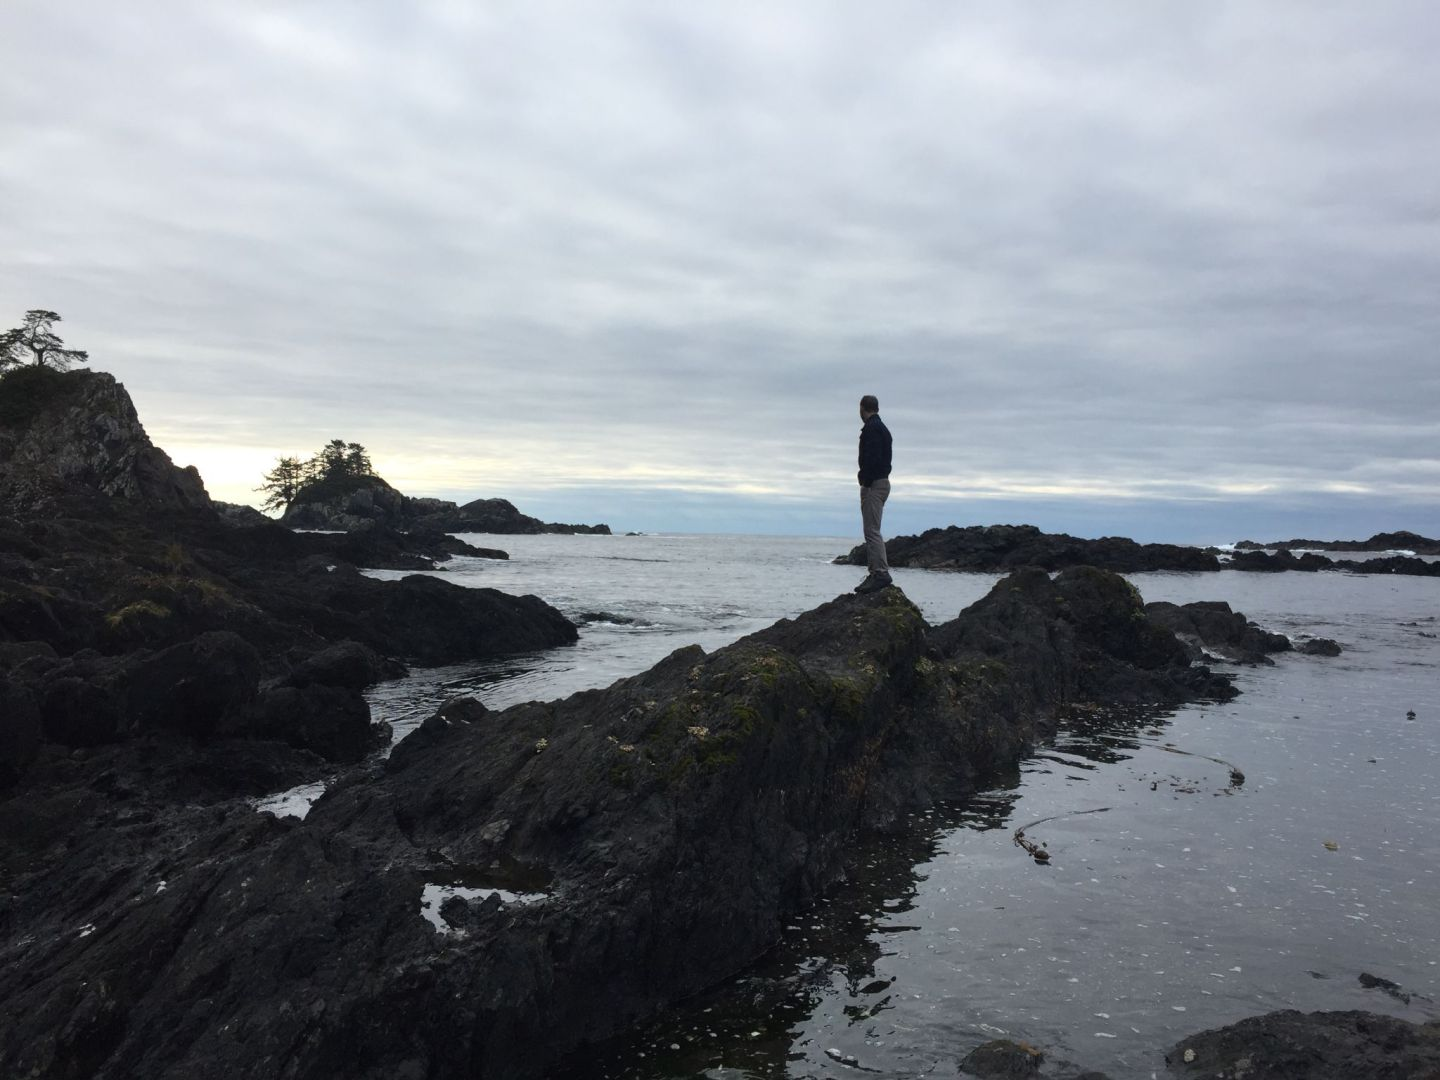 Scaling the rocks of the Wild Pacific Trail near Ucluelet